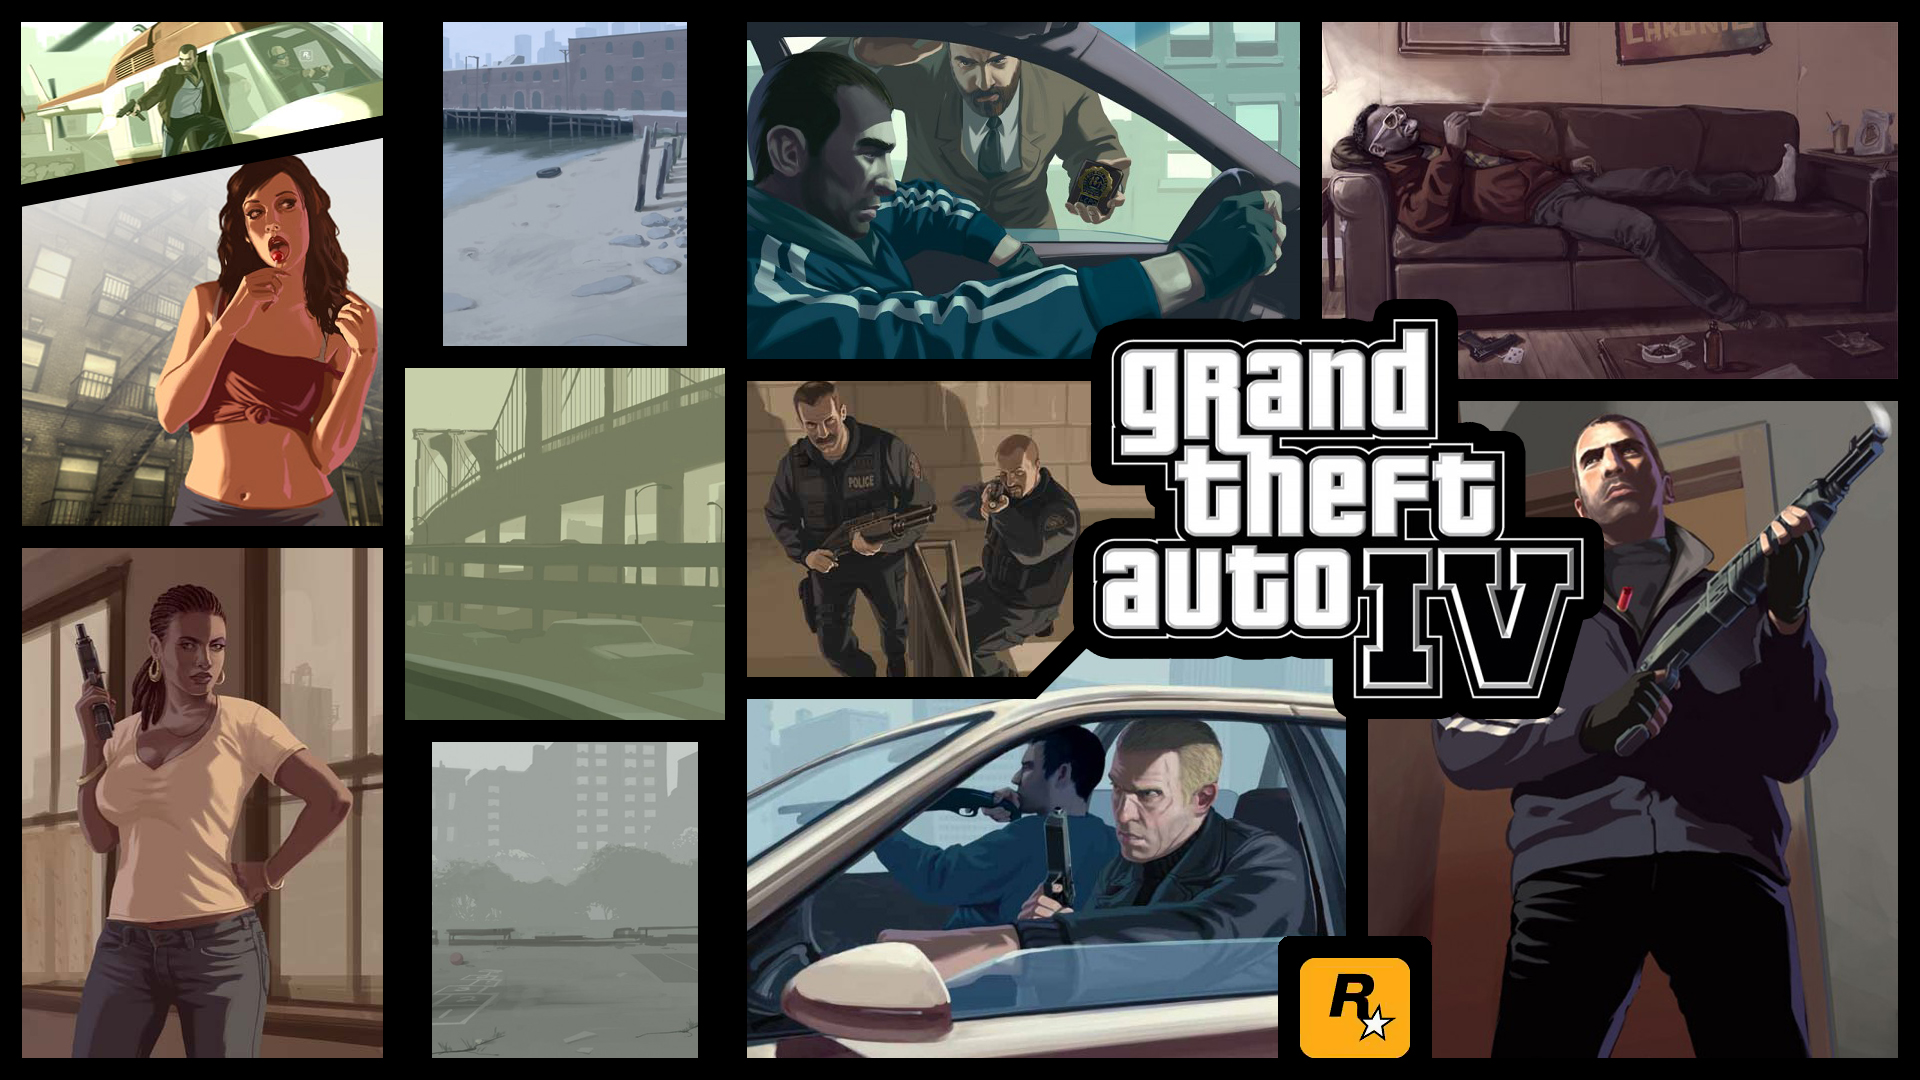 ps3 gta backgrounds wallpapers wallpaper 1920x1080 1920x1080